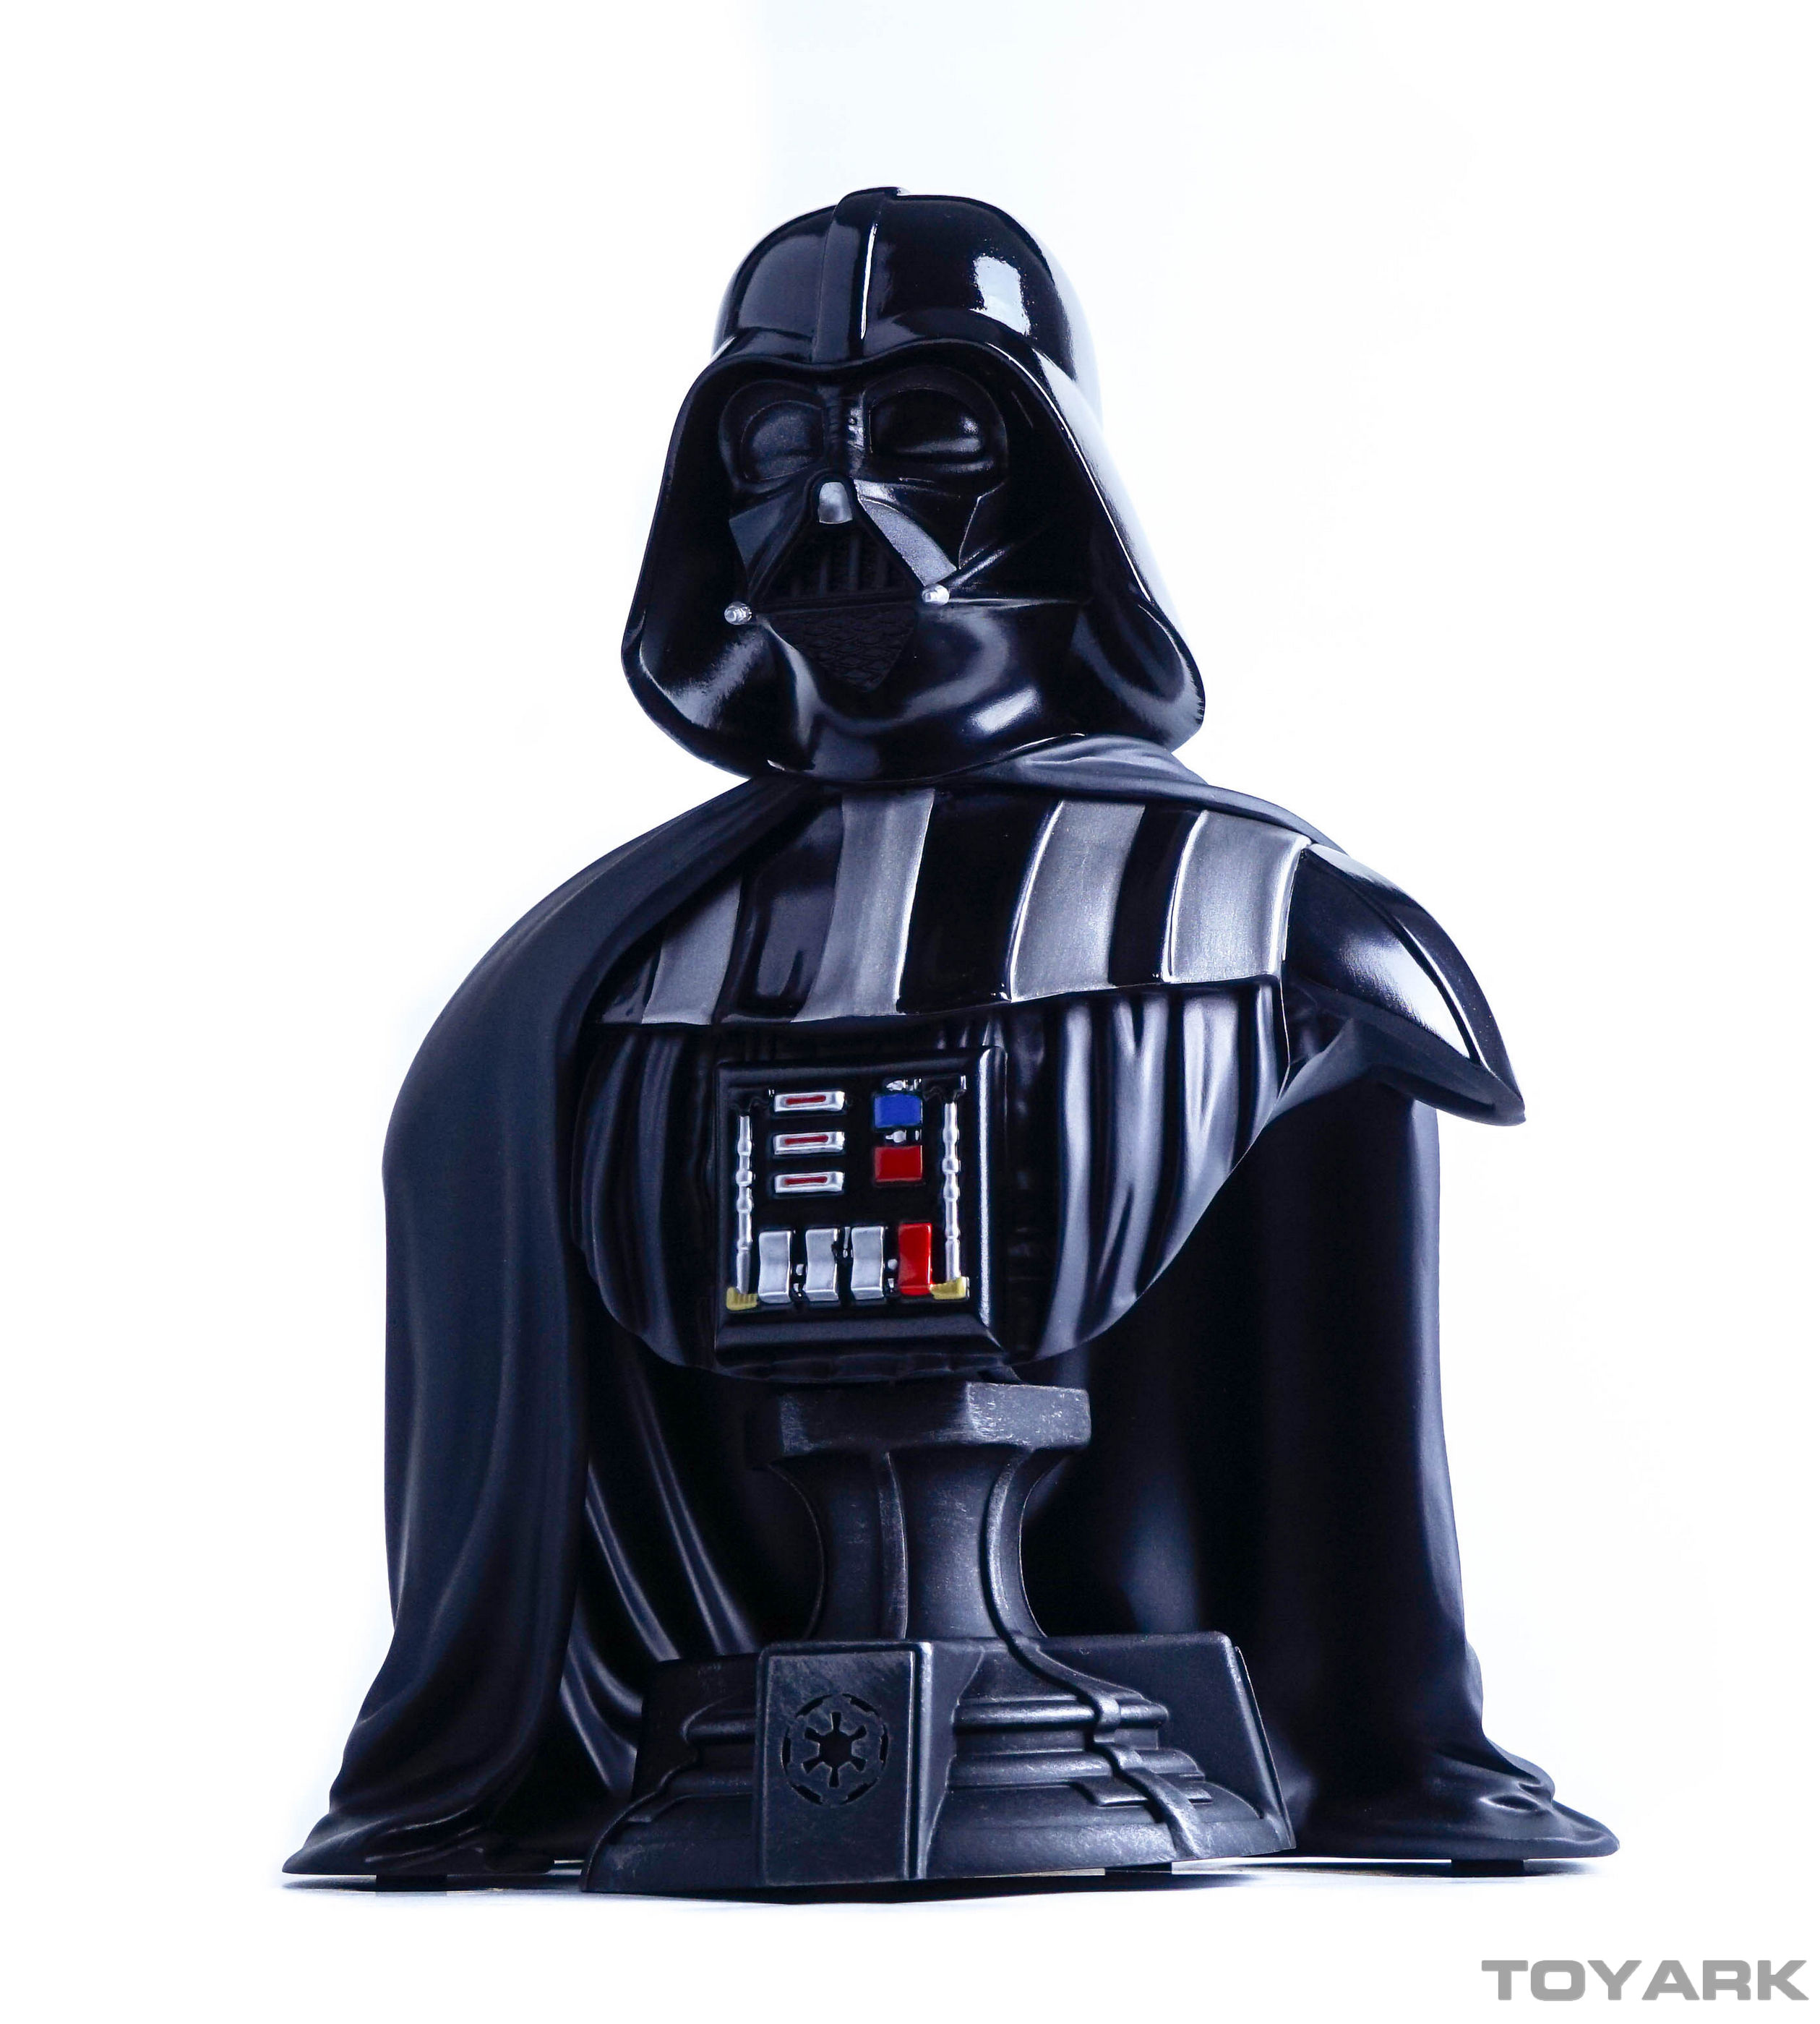 http://news.toyark.com/wp-content/uploads/sites/4/2015/12/Vader-Bust-027.jpg